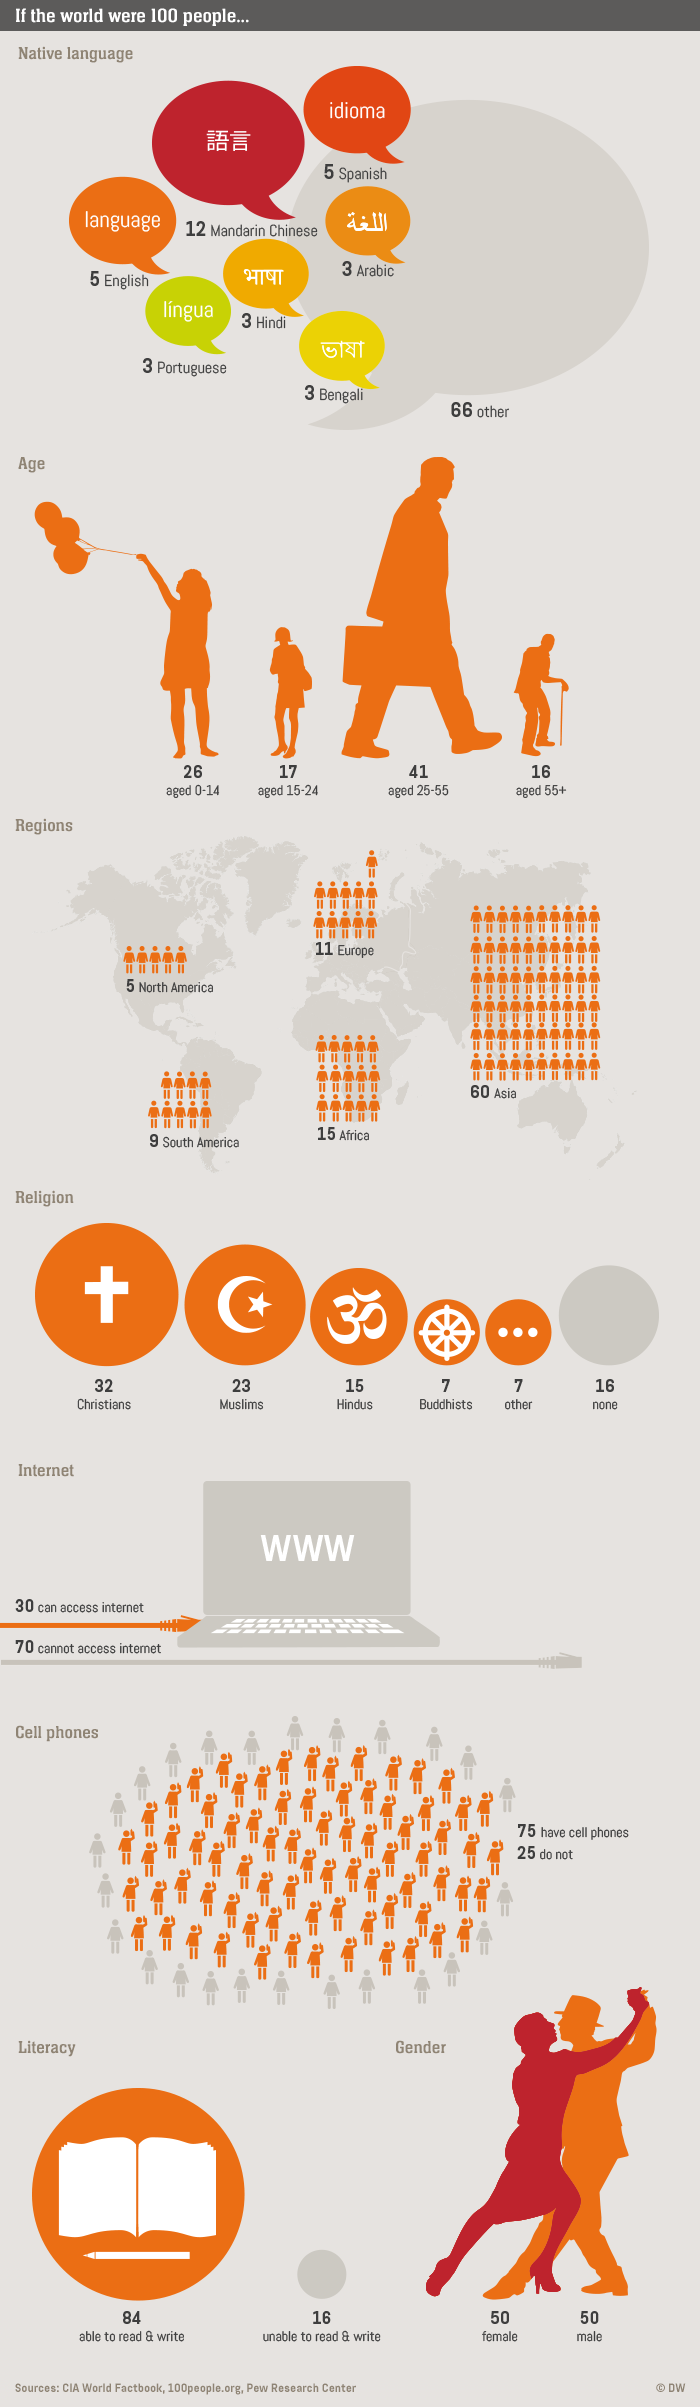 10.2014 DW Life Links If the world were 100 people